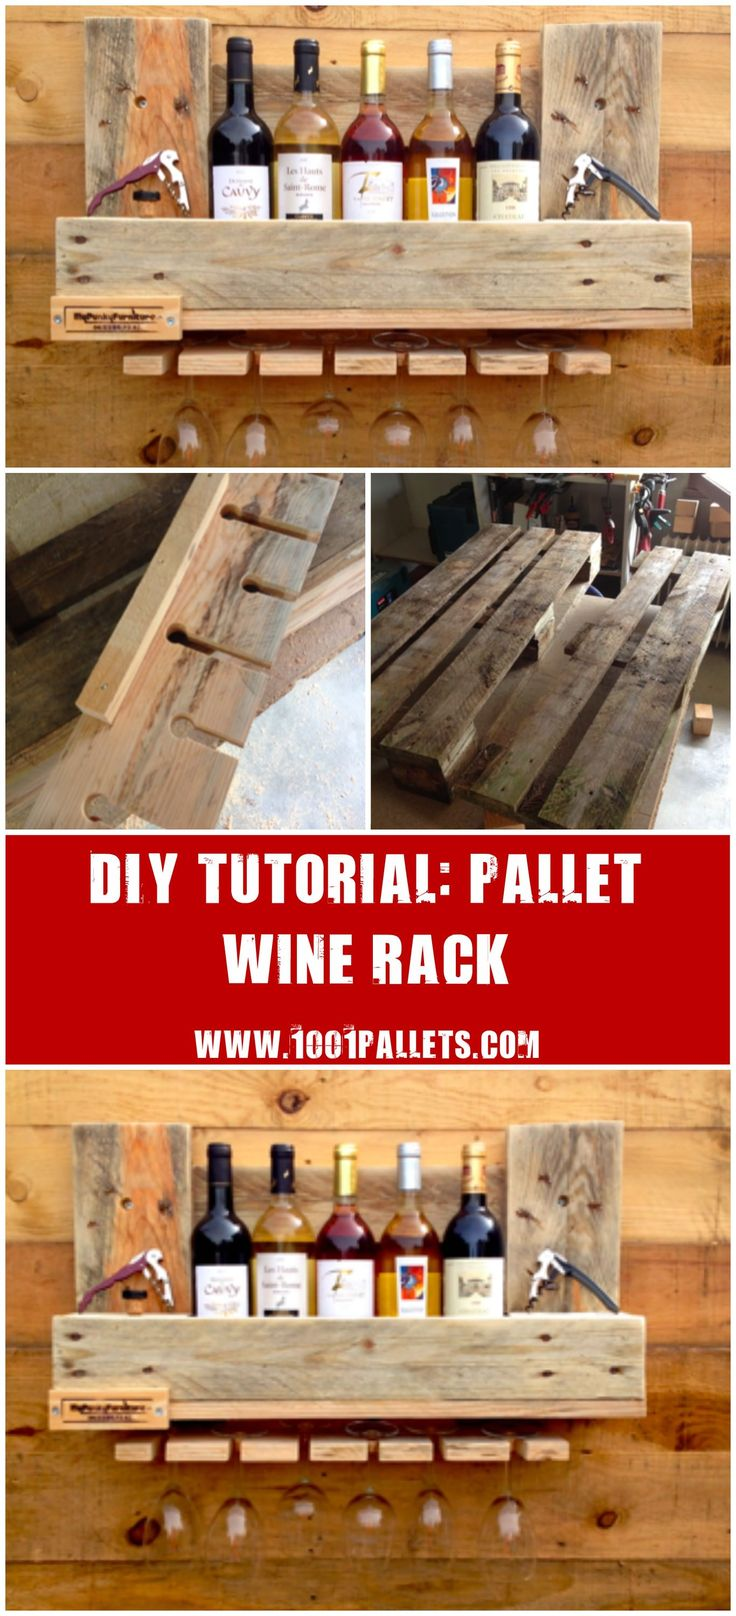 "[gallery columns=""5"" link=""none"" ids=""14881,14890,14891,14892,14893""] This tutorial by Jean-Christian Gambellin will show you how to made a pallet wine rack/shelf for your kitchen. 1 Pallet. Approximately 1 day to make it. Need some skills to do it, we evaluated this project…"